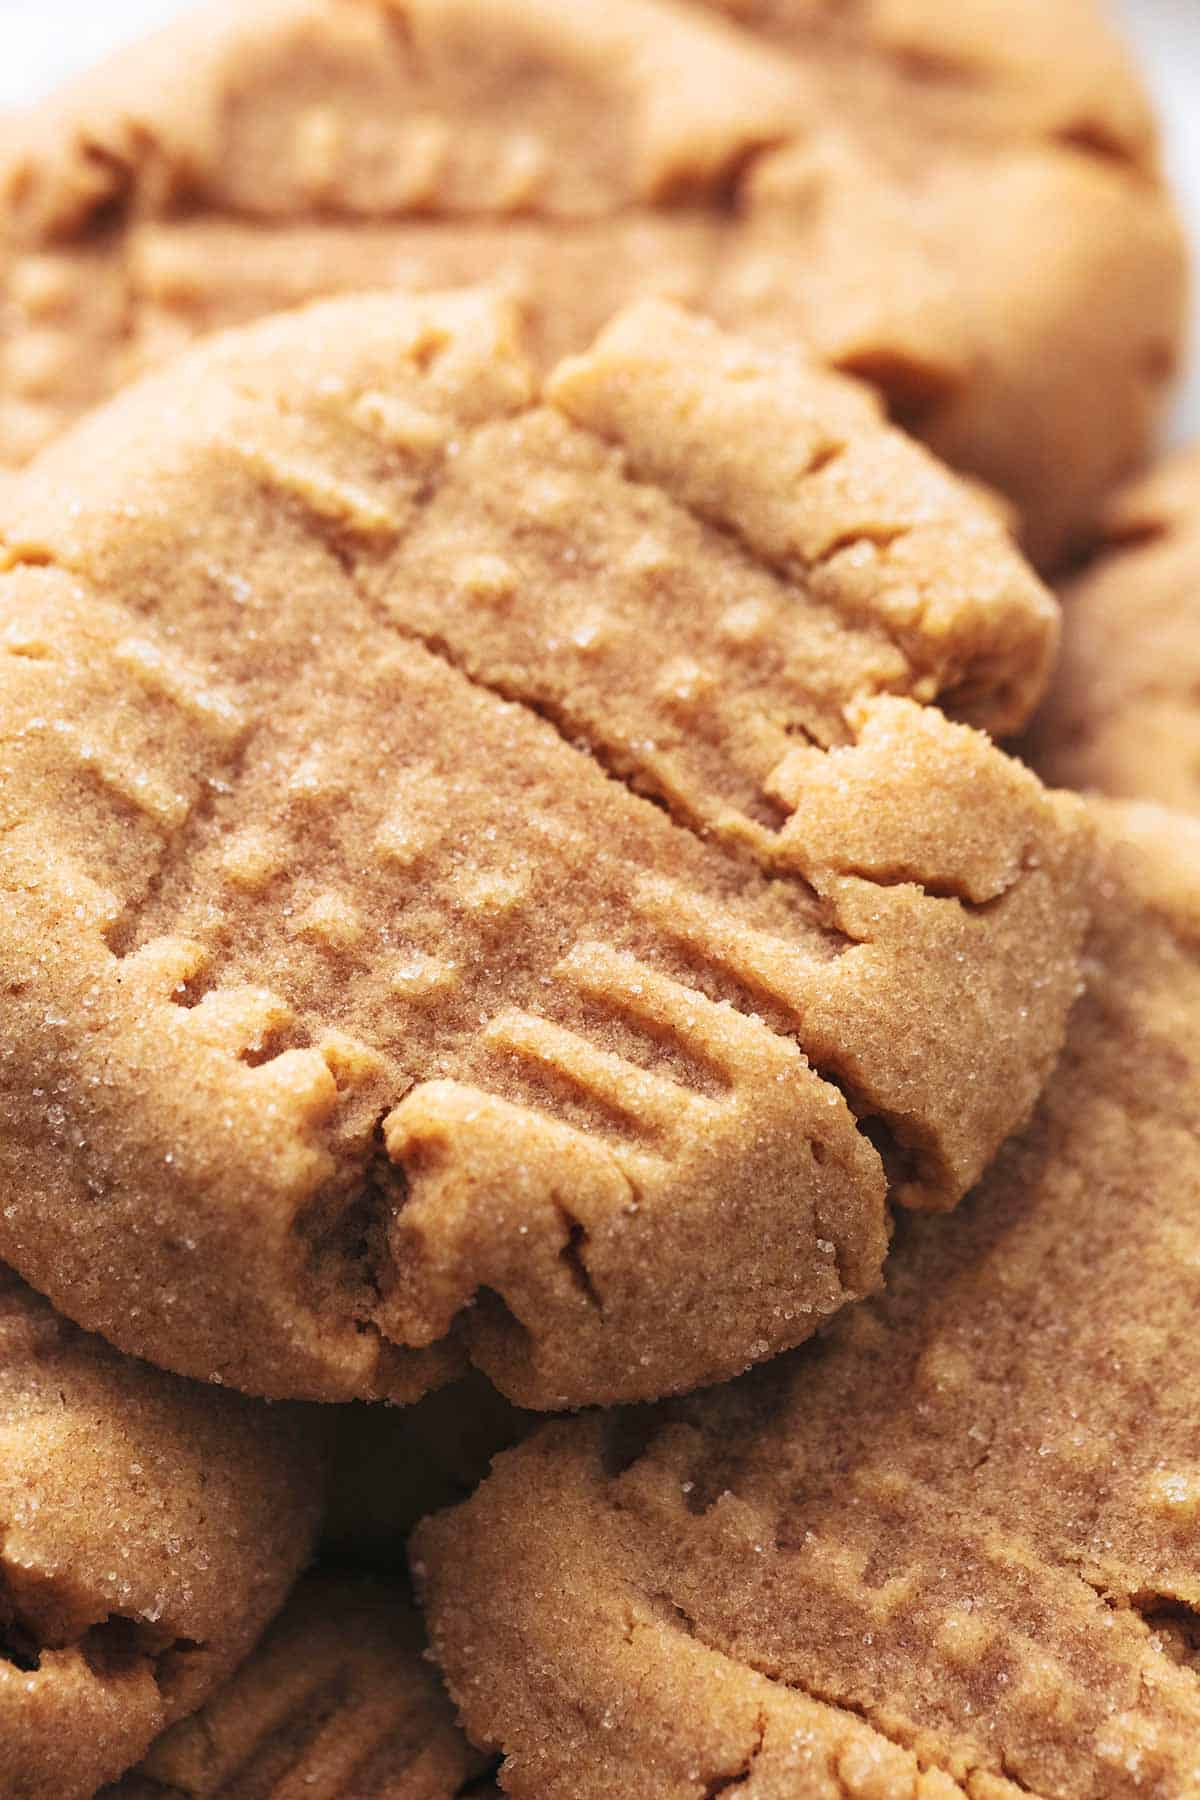 up close pile of peanut butter cookies